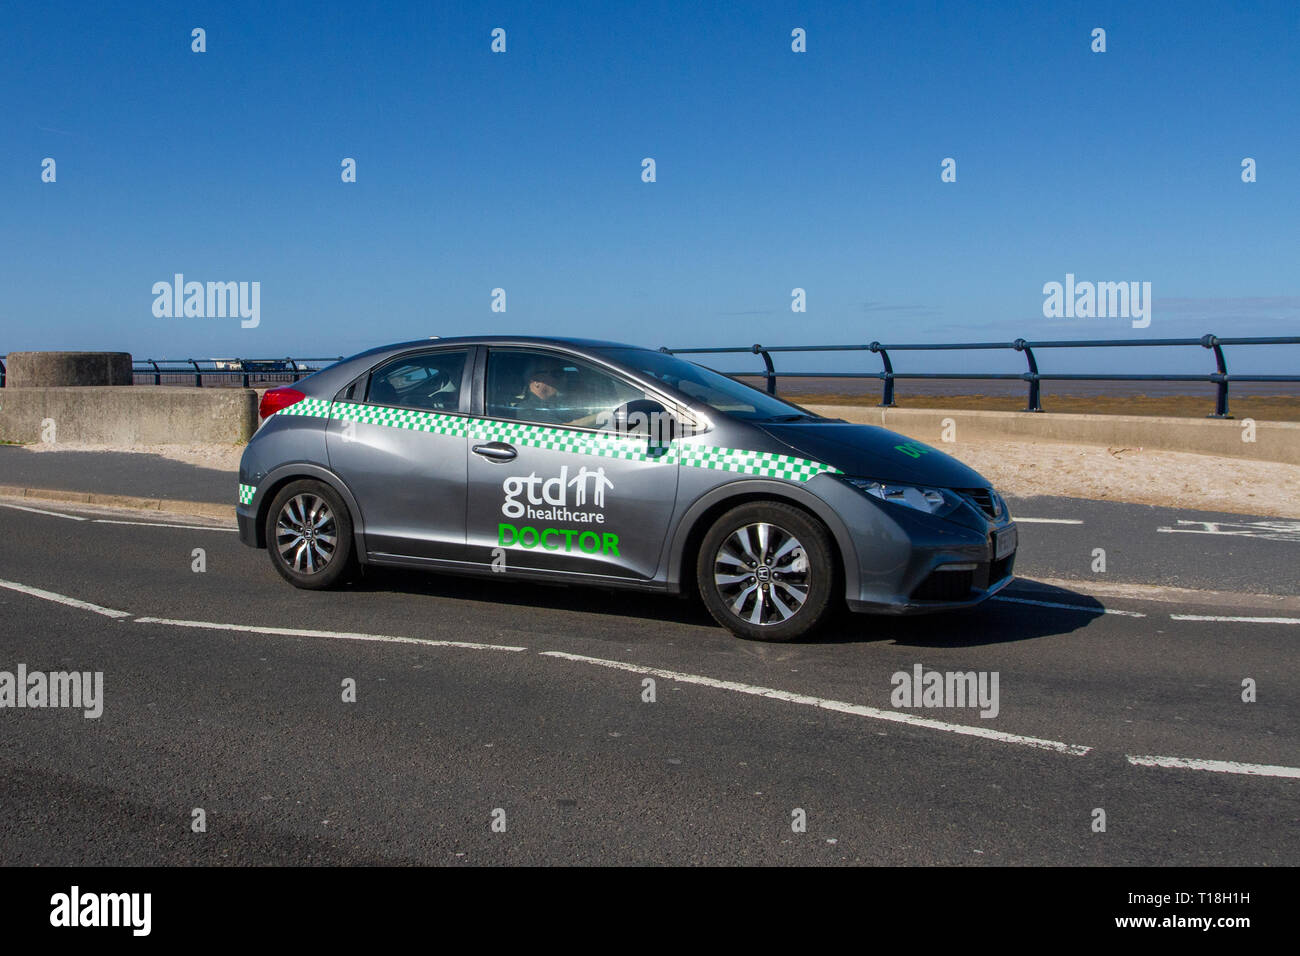 Gtd healthcare Doctor, 2013 Honda Civic I-Dtec SE driving on the seafront promenade, Marine Drive, Southport, Merseyside, UK - Stock Image